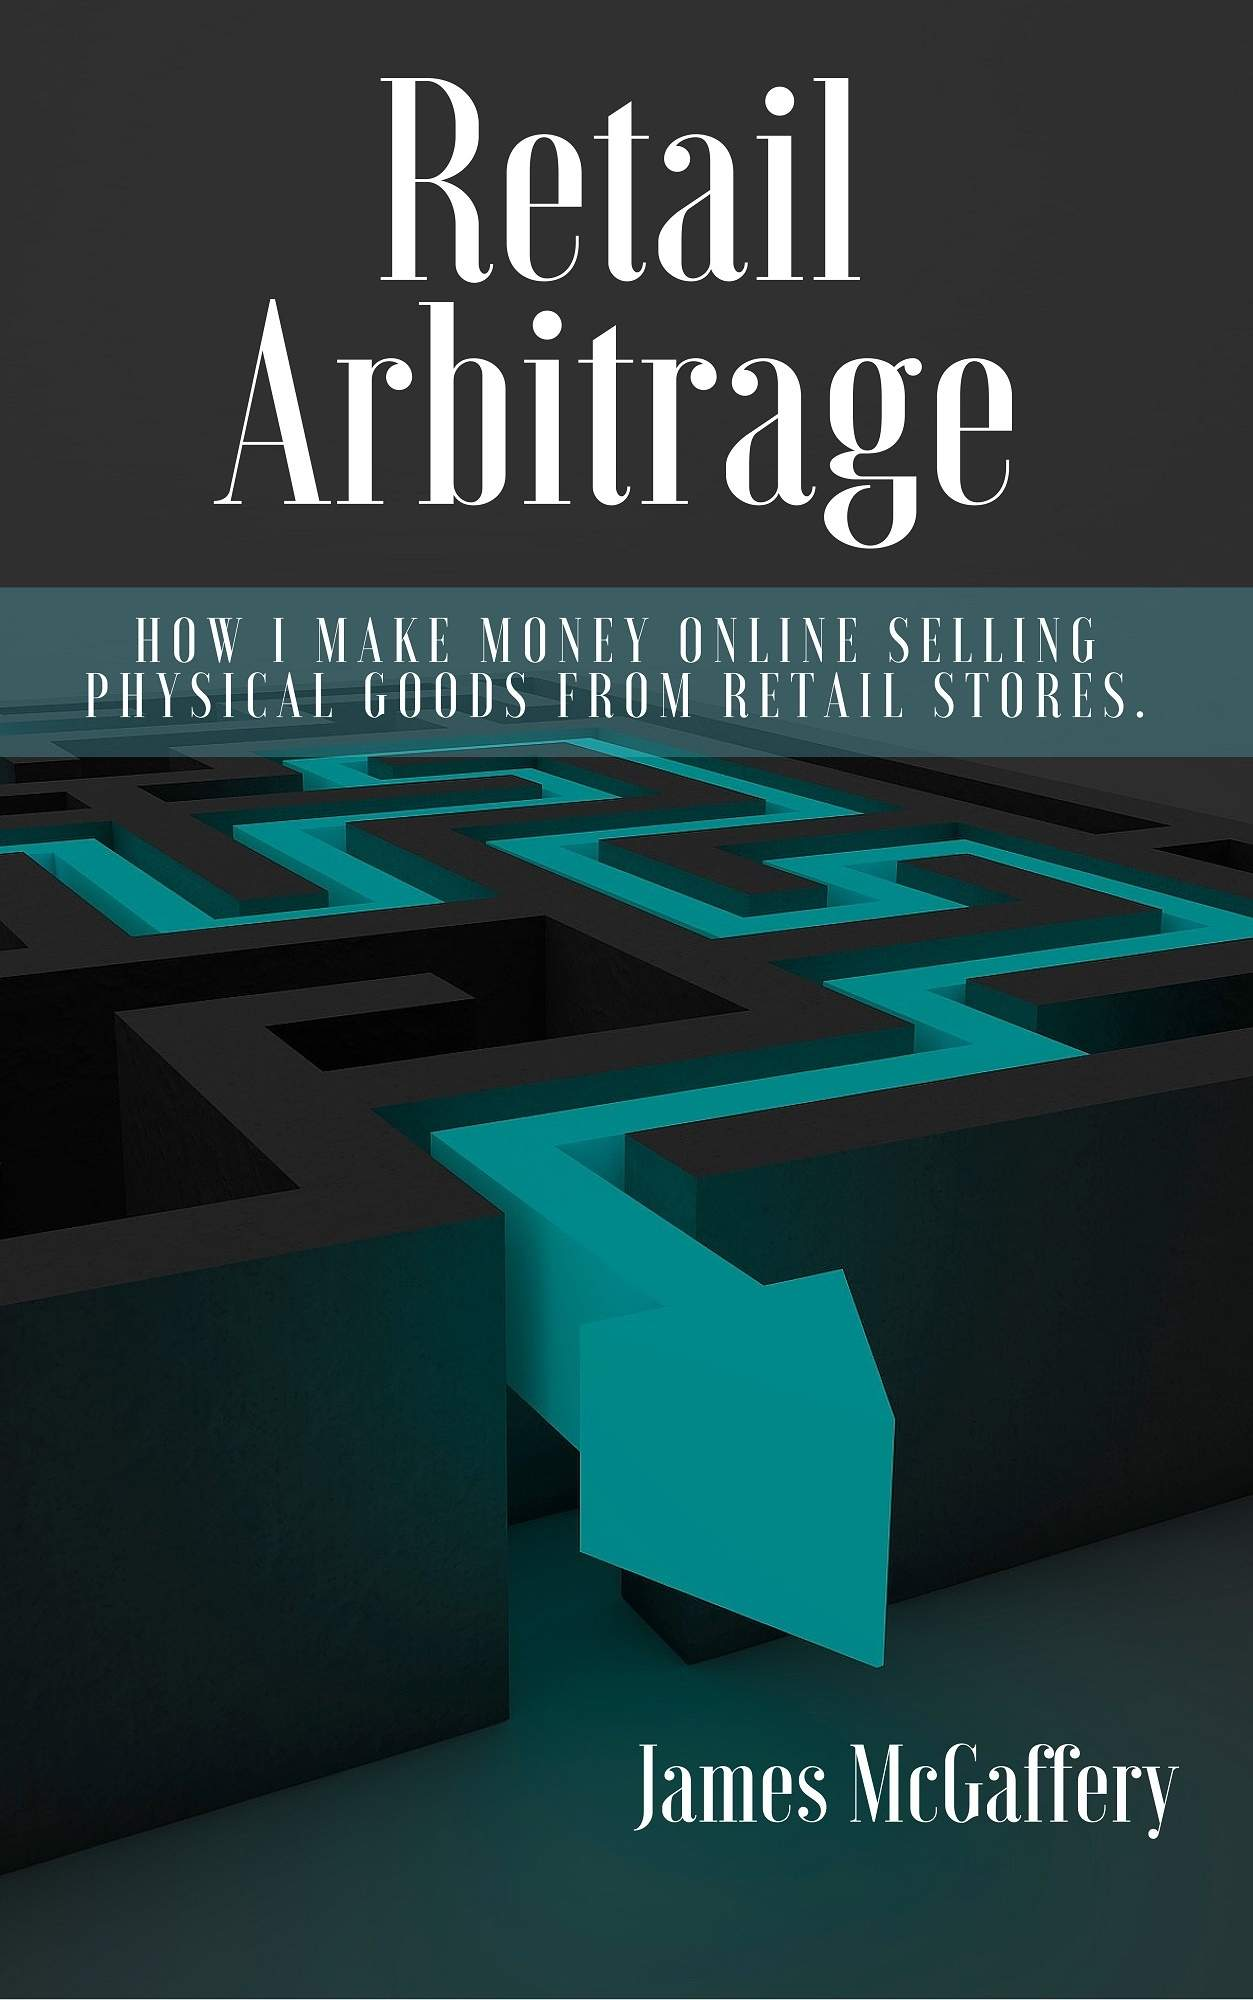 Retail Arbitrage - How I Make Money Online Selling Physical Goods